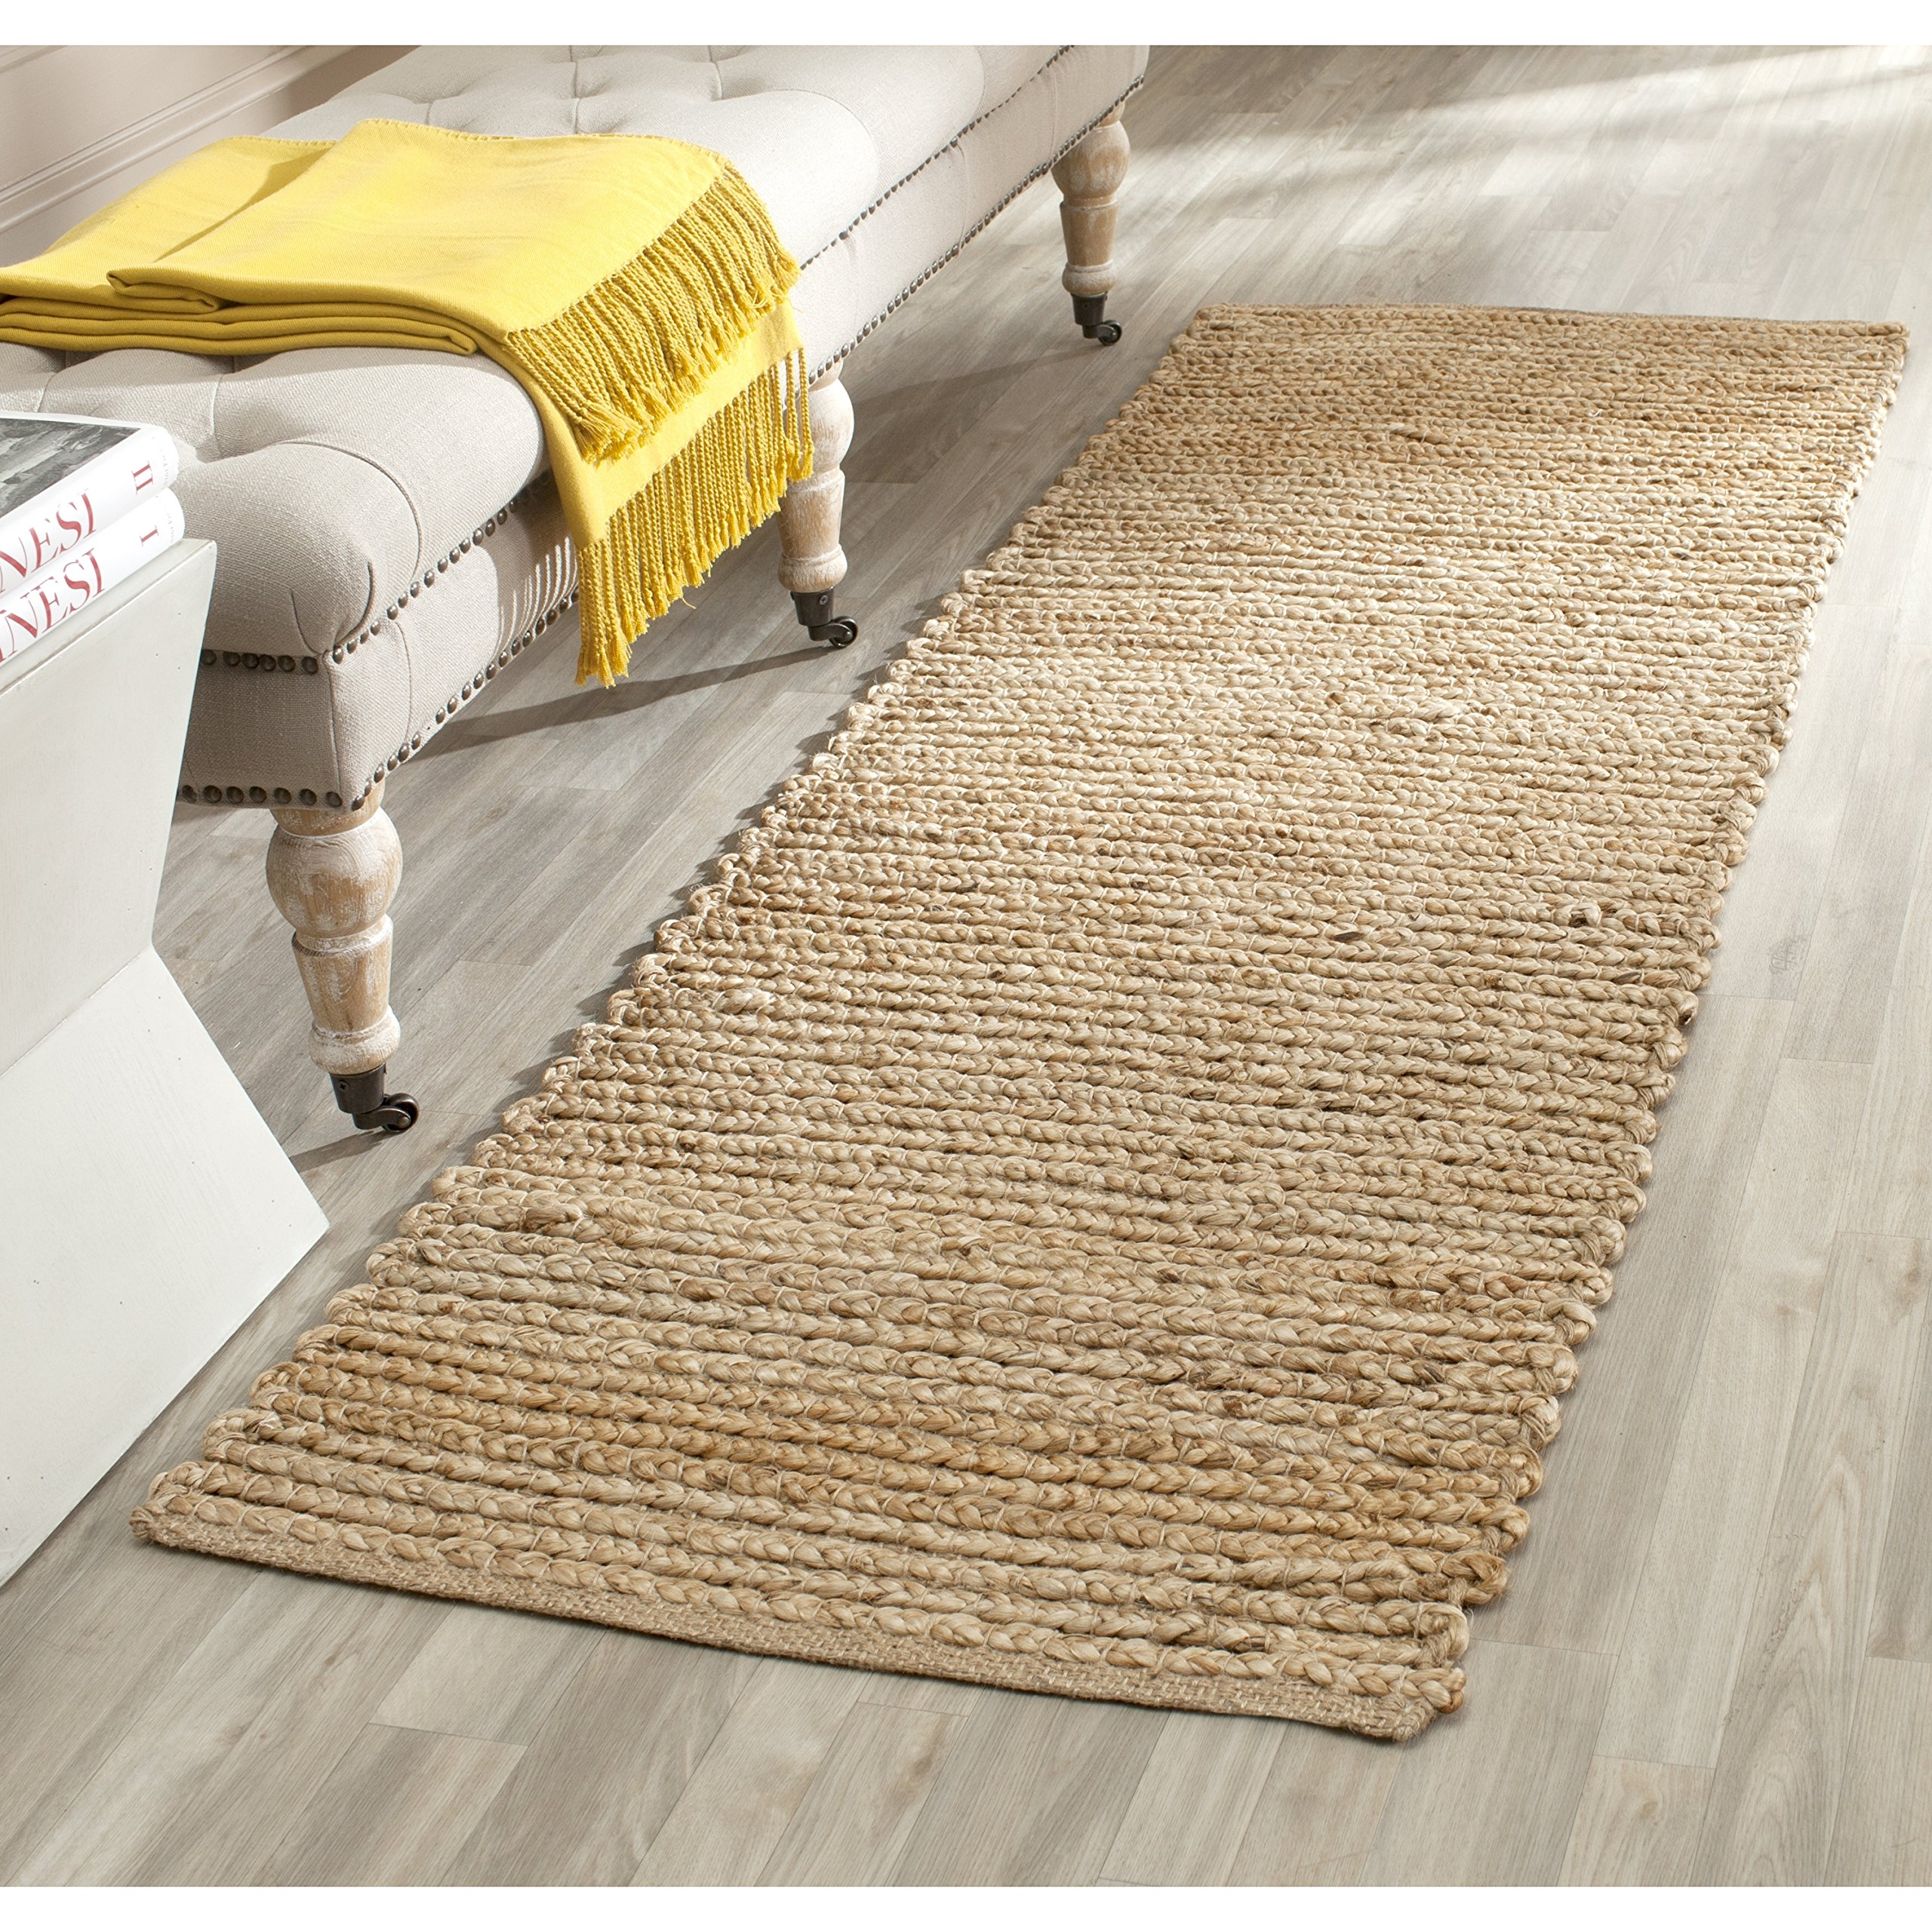 Safavieh Cape Cod Collection CAP355A Hand Woven Flatweave Natural Jute Runner (2'3'' x 6')